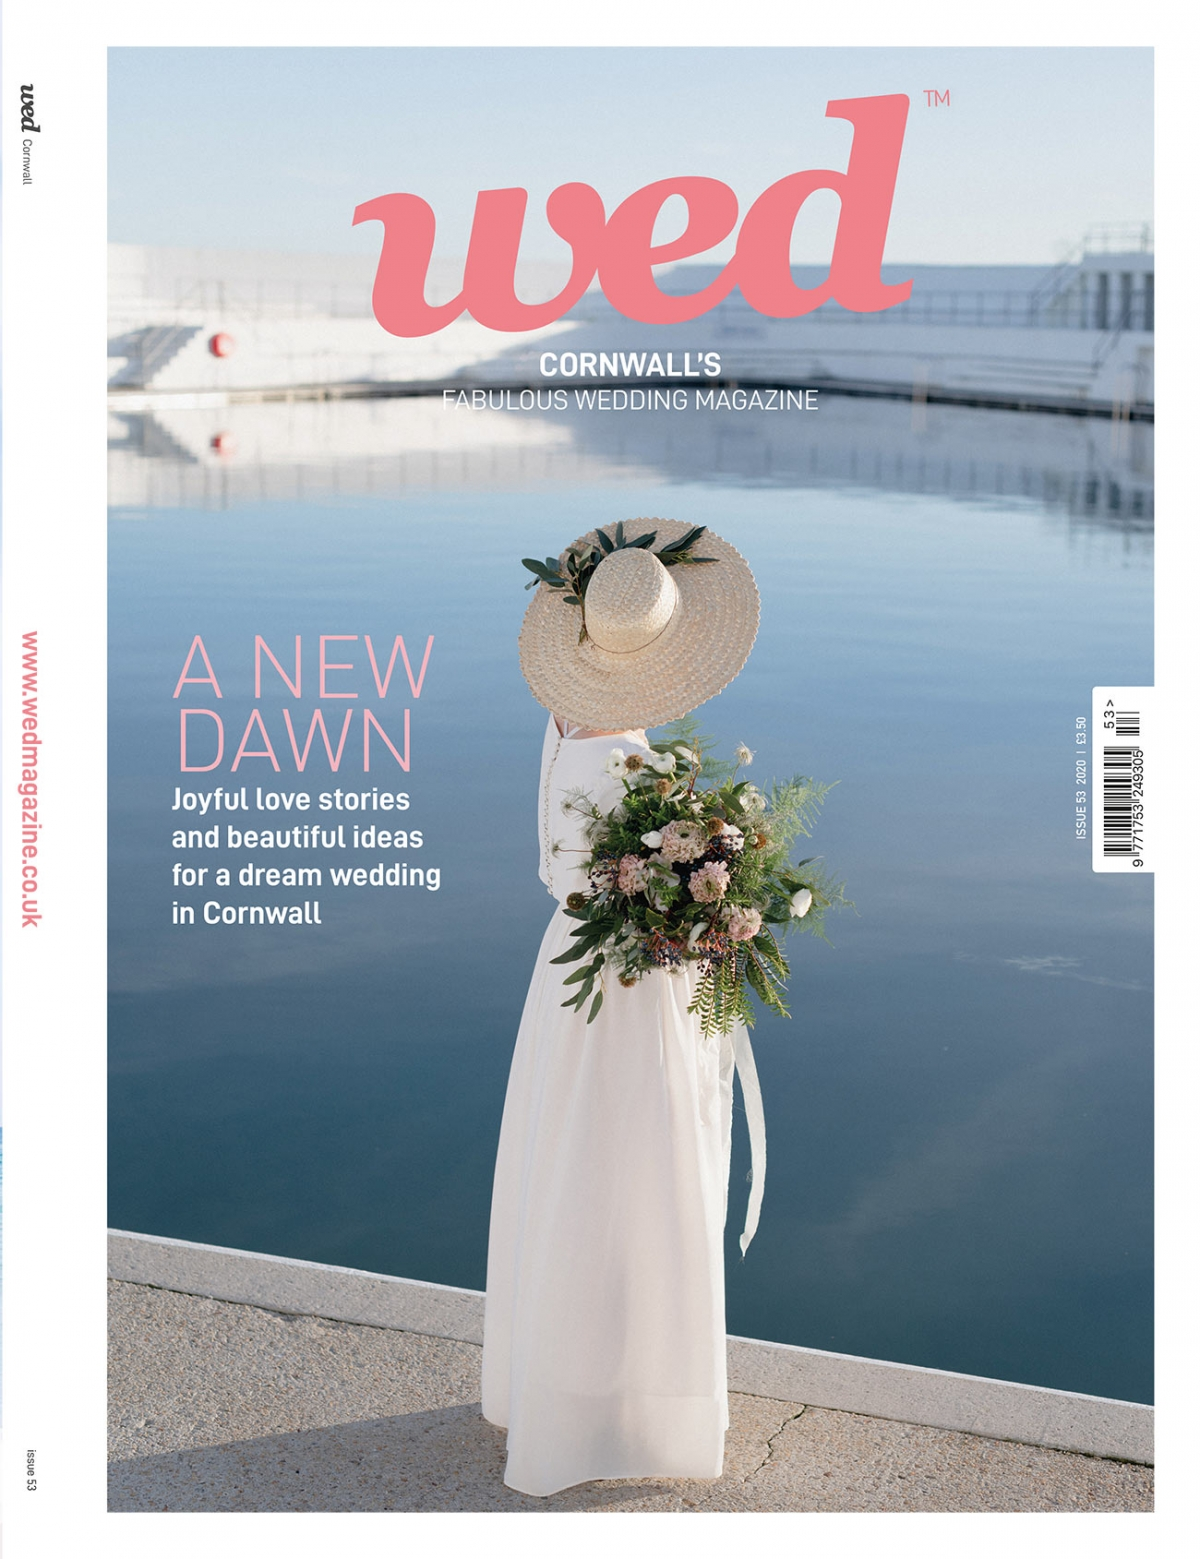 Order a print copy of Cornwall Wed Magazine - Issue 53